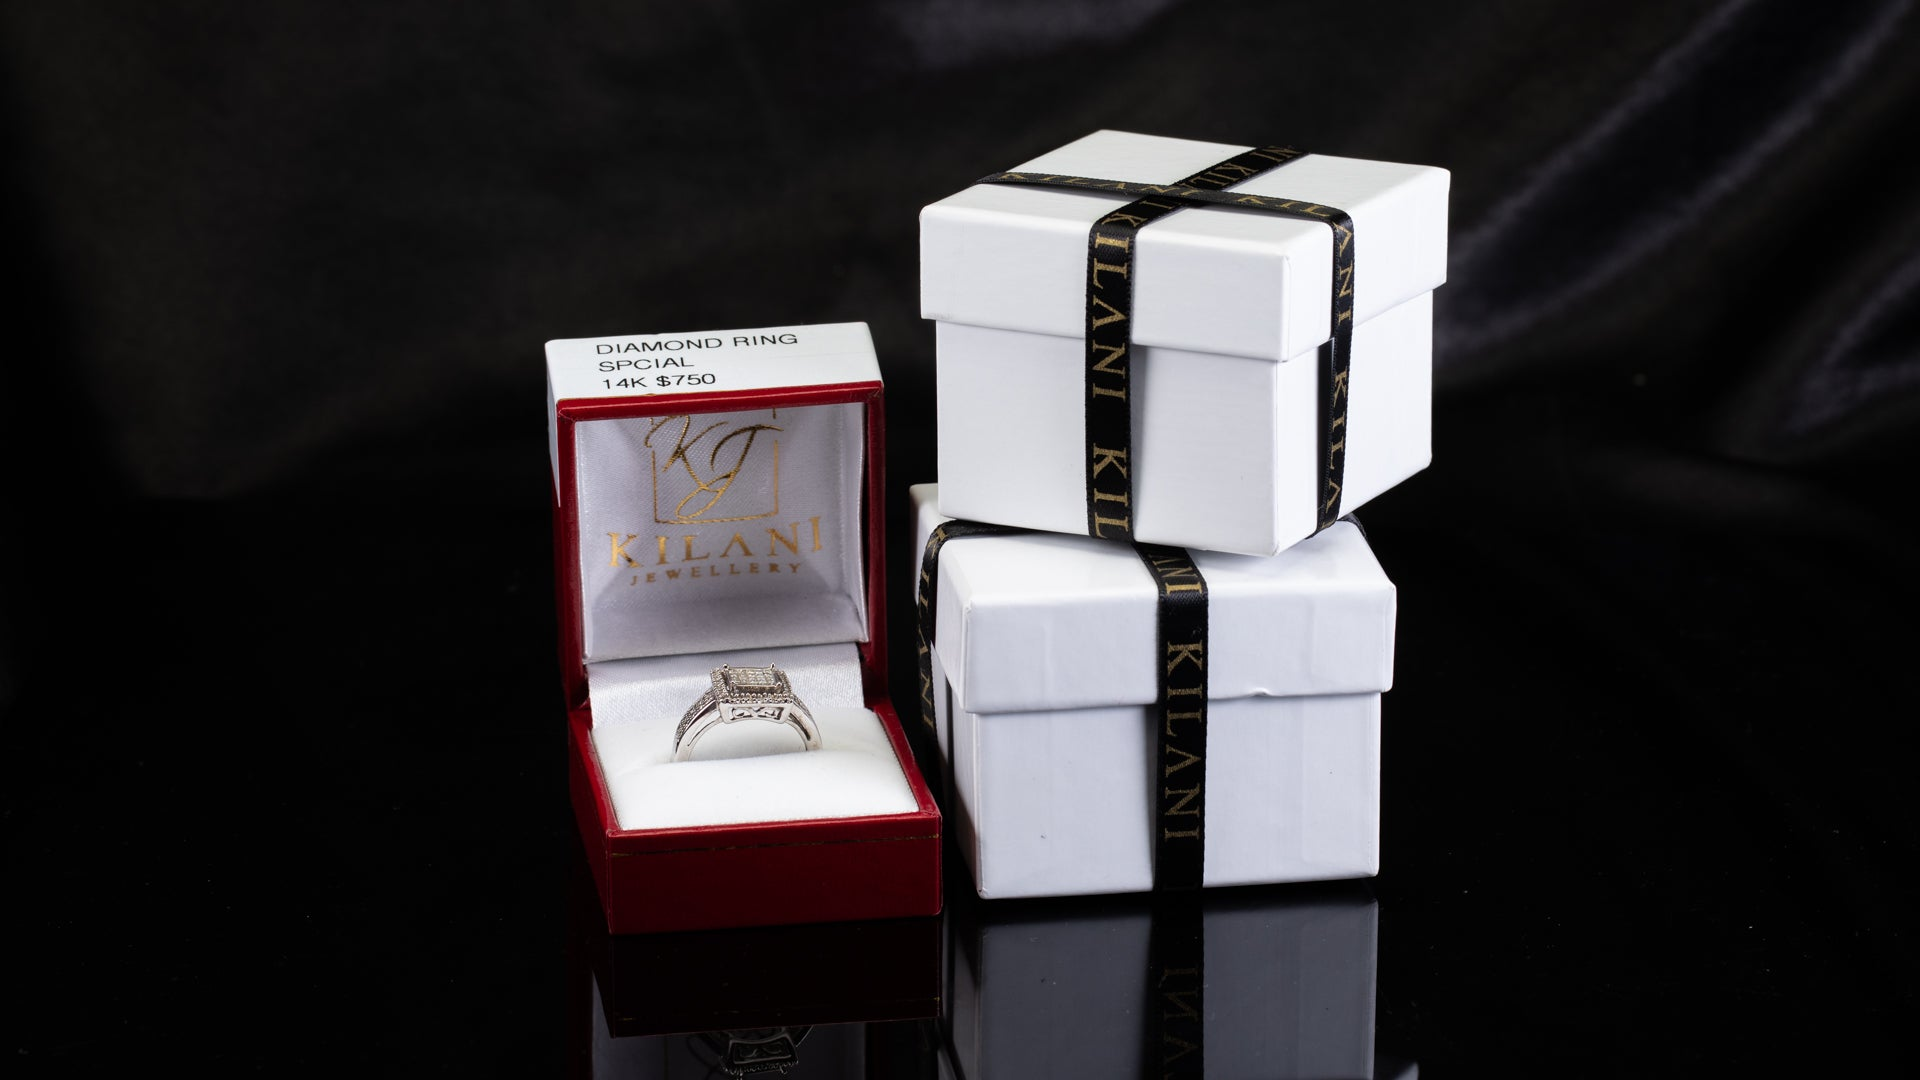 [SPECIAL] 14k White Gold Square Halo Invisible Diamond Ring